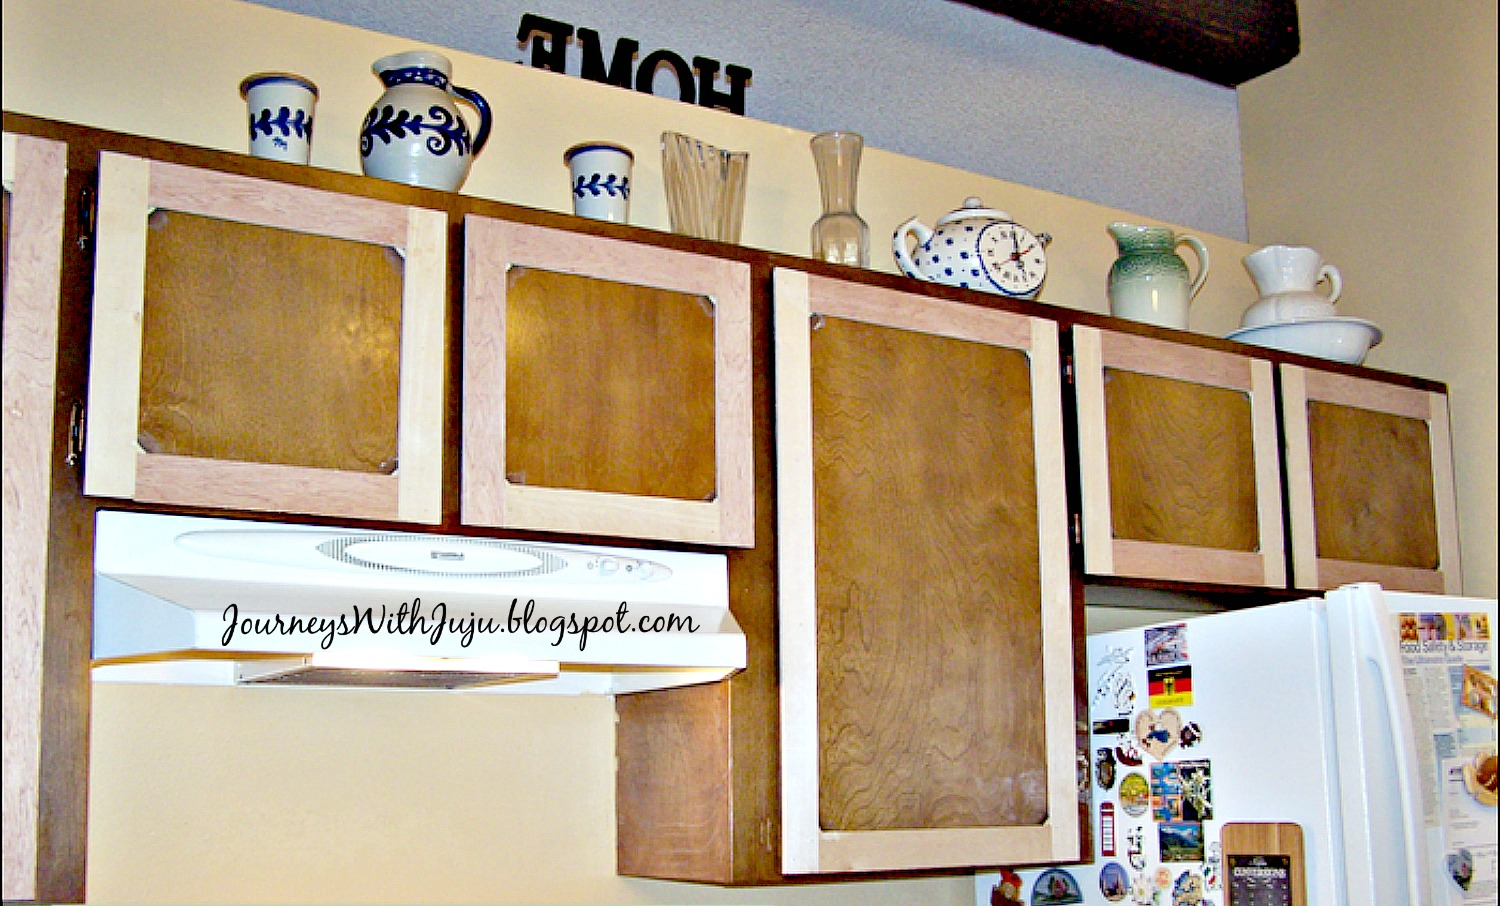 journeys with juju: kitchen cabinet makeover - doors & drawers